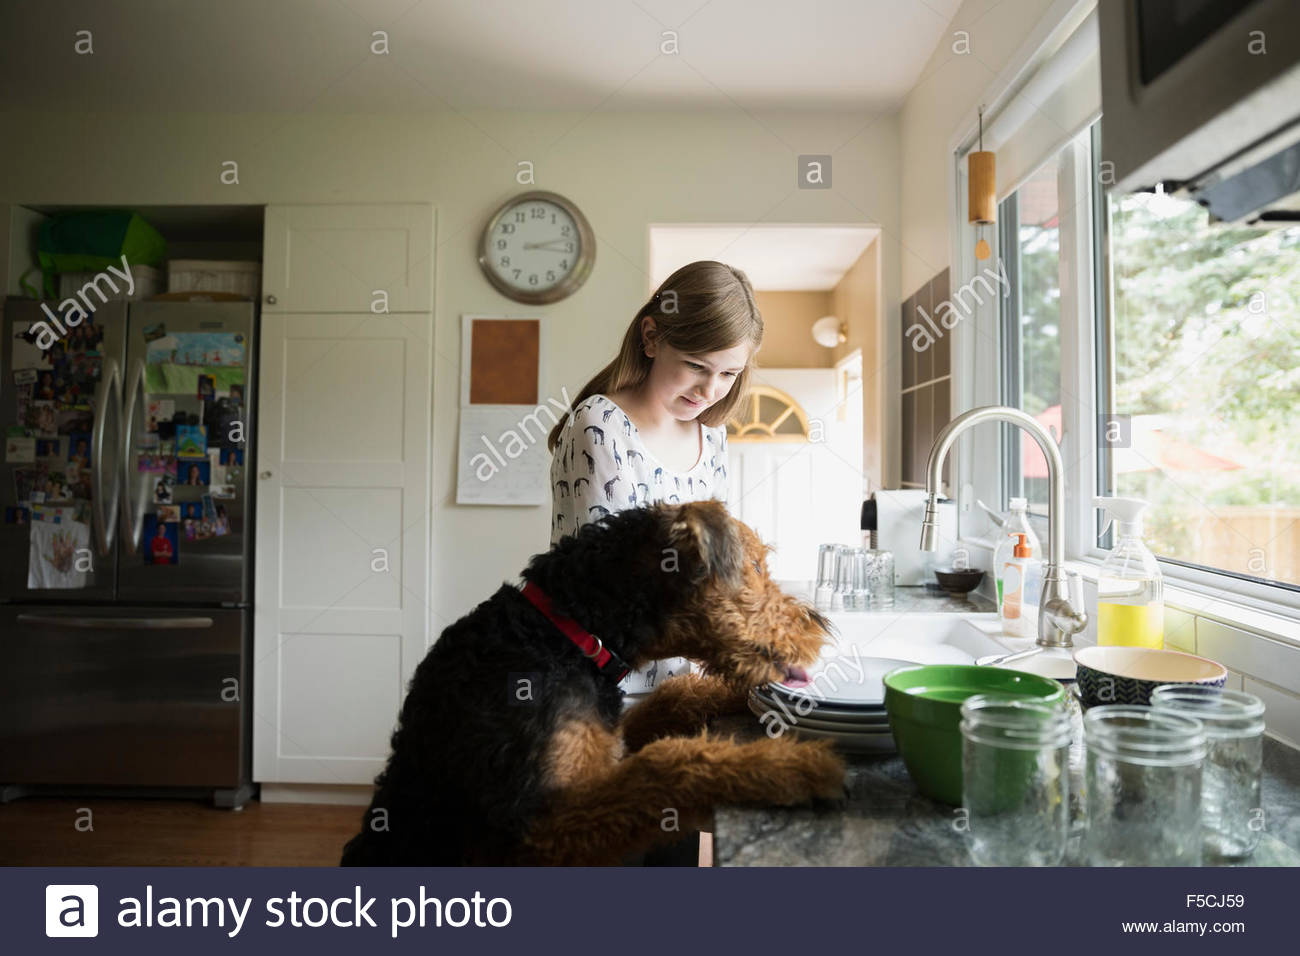 Dog jumping on counter licking plates - Stock Image